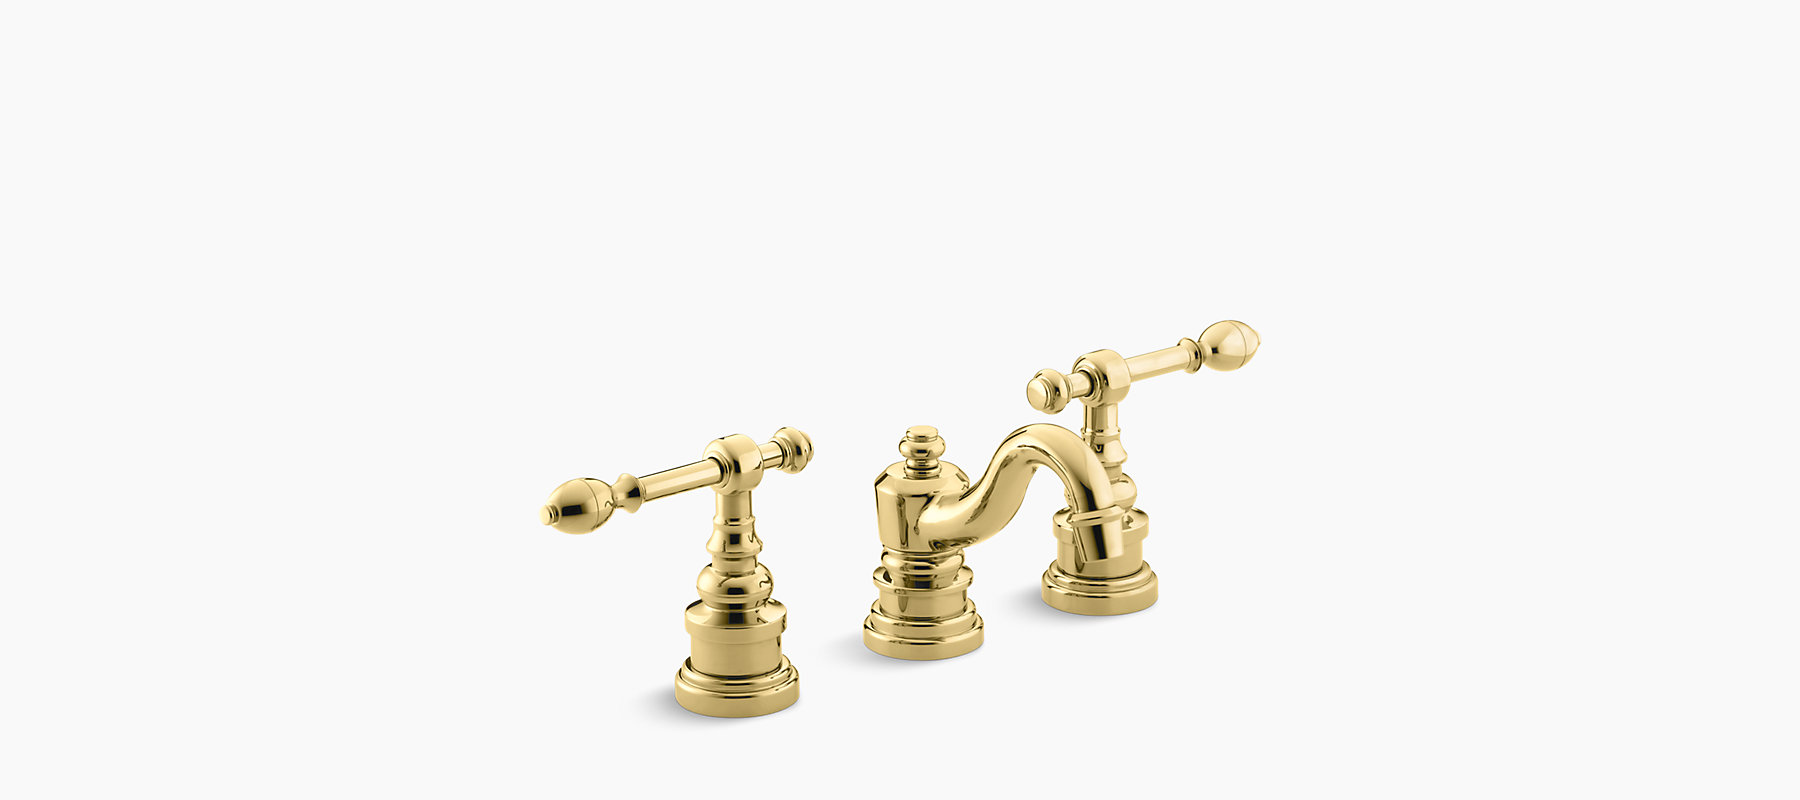 Iv Georges Br Widespread Sink Faucet